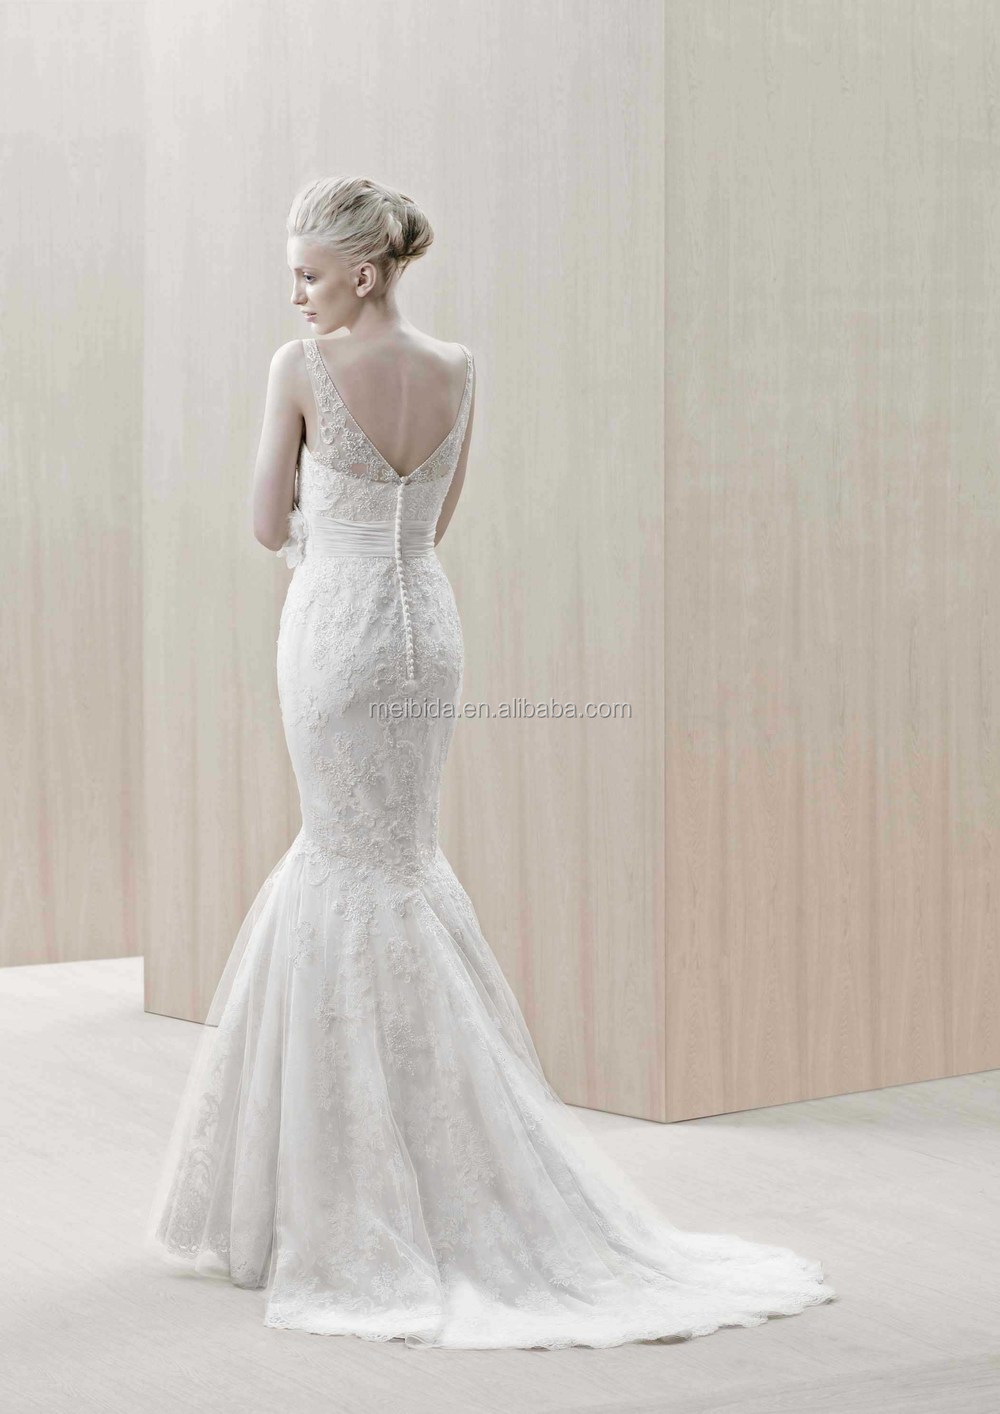 Fishtail Wedding Dress Derby : Wedding dress with lace fabric fishtail style button back bridal gown